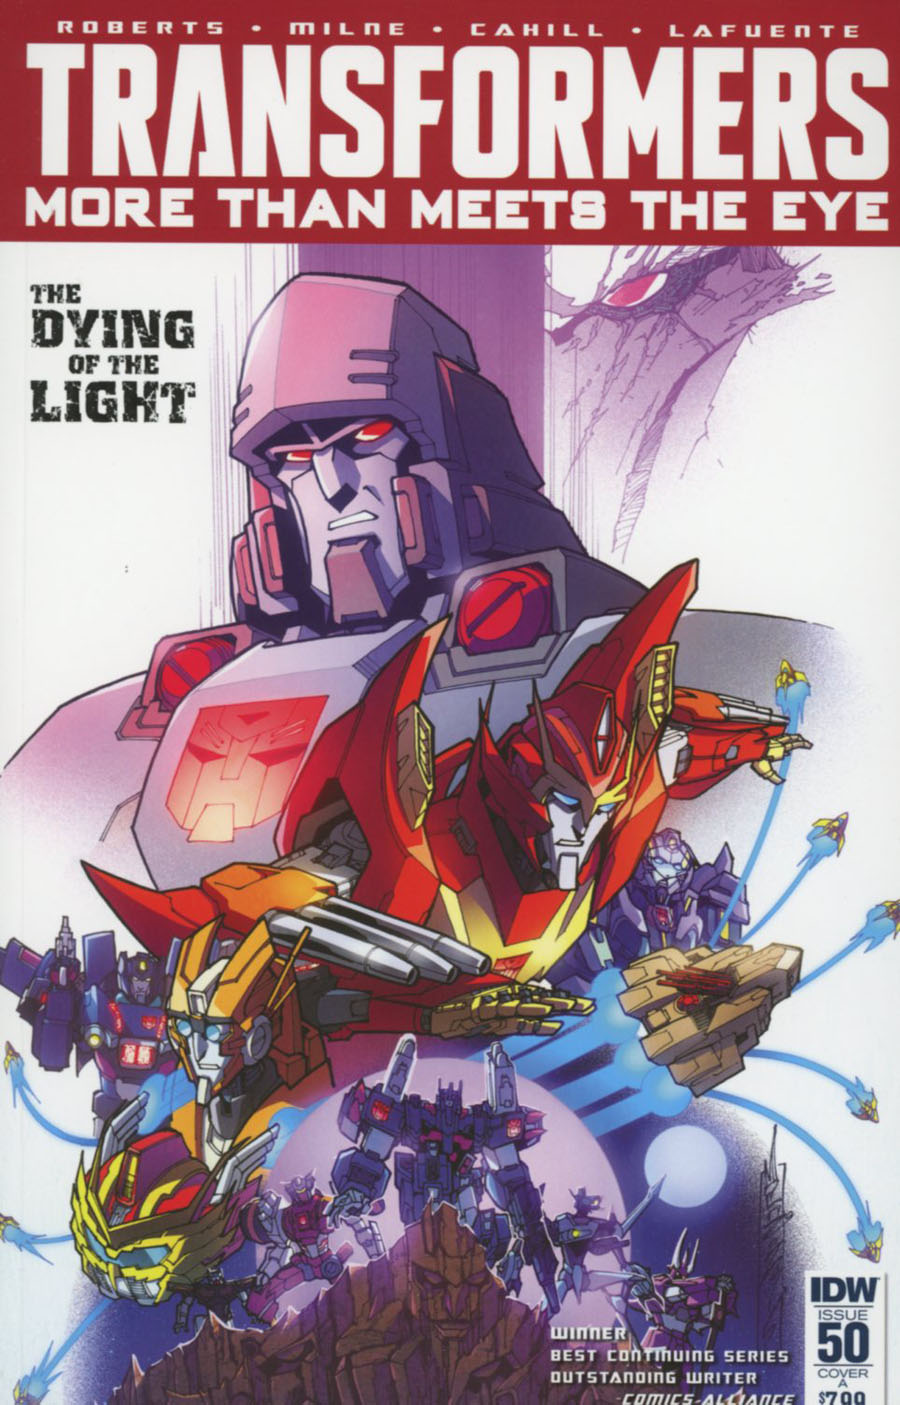 Transformers More Than Meets The Eye #50 Cover A Regular Alex Milne Cover